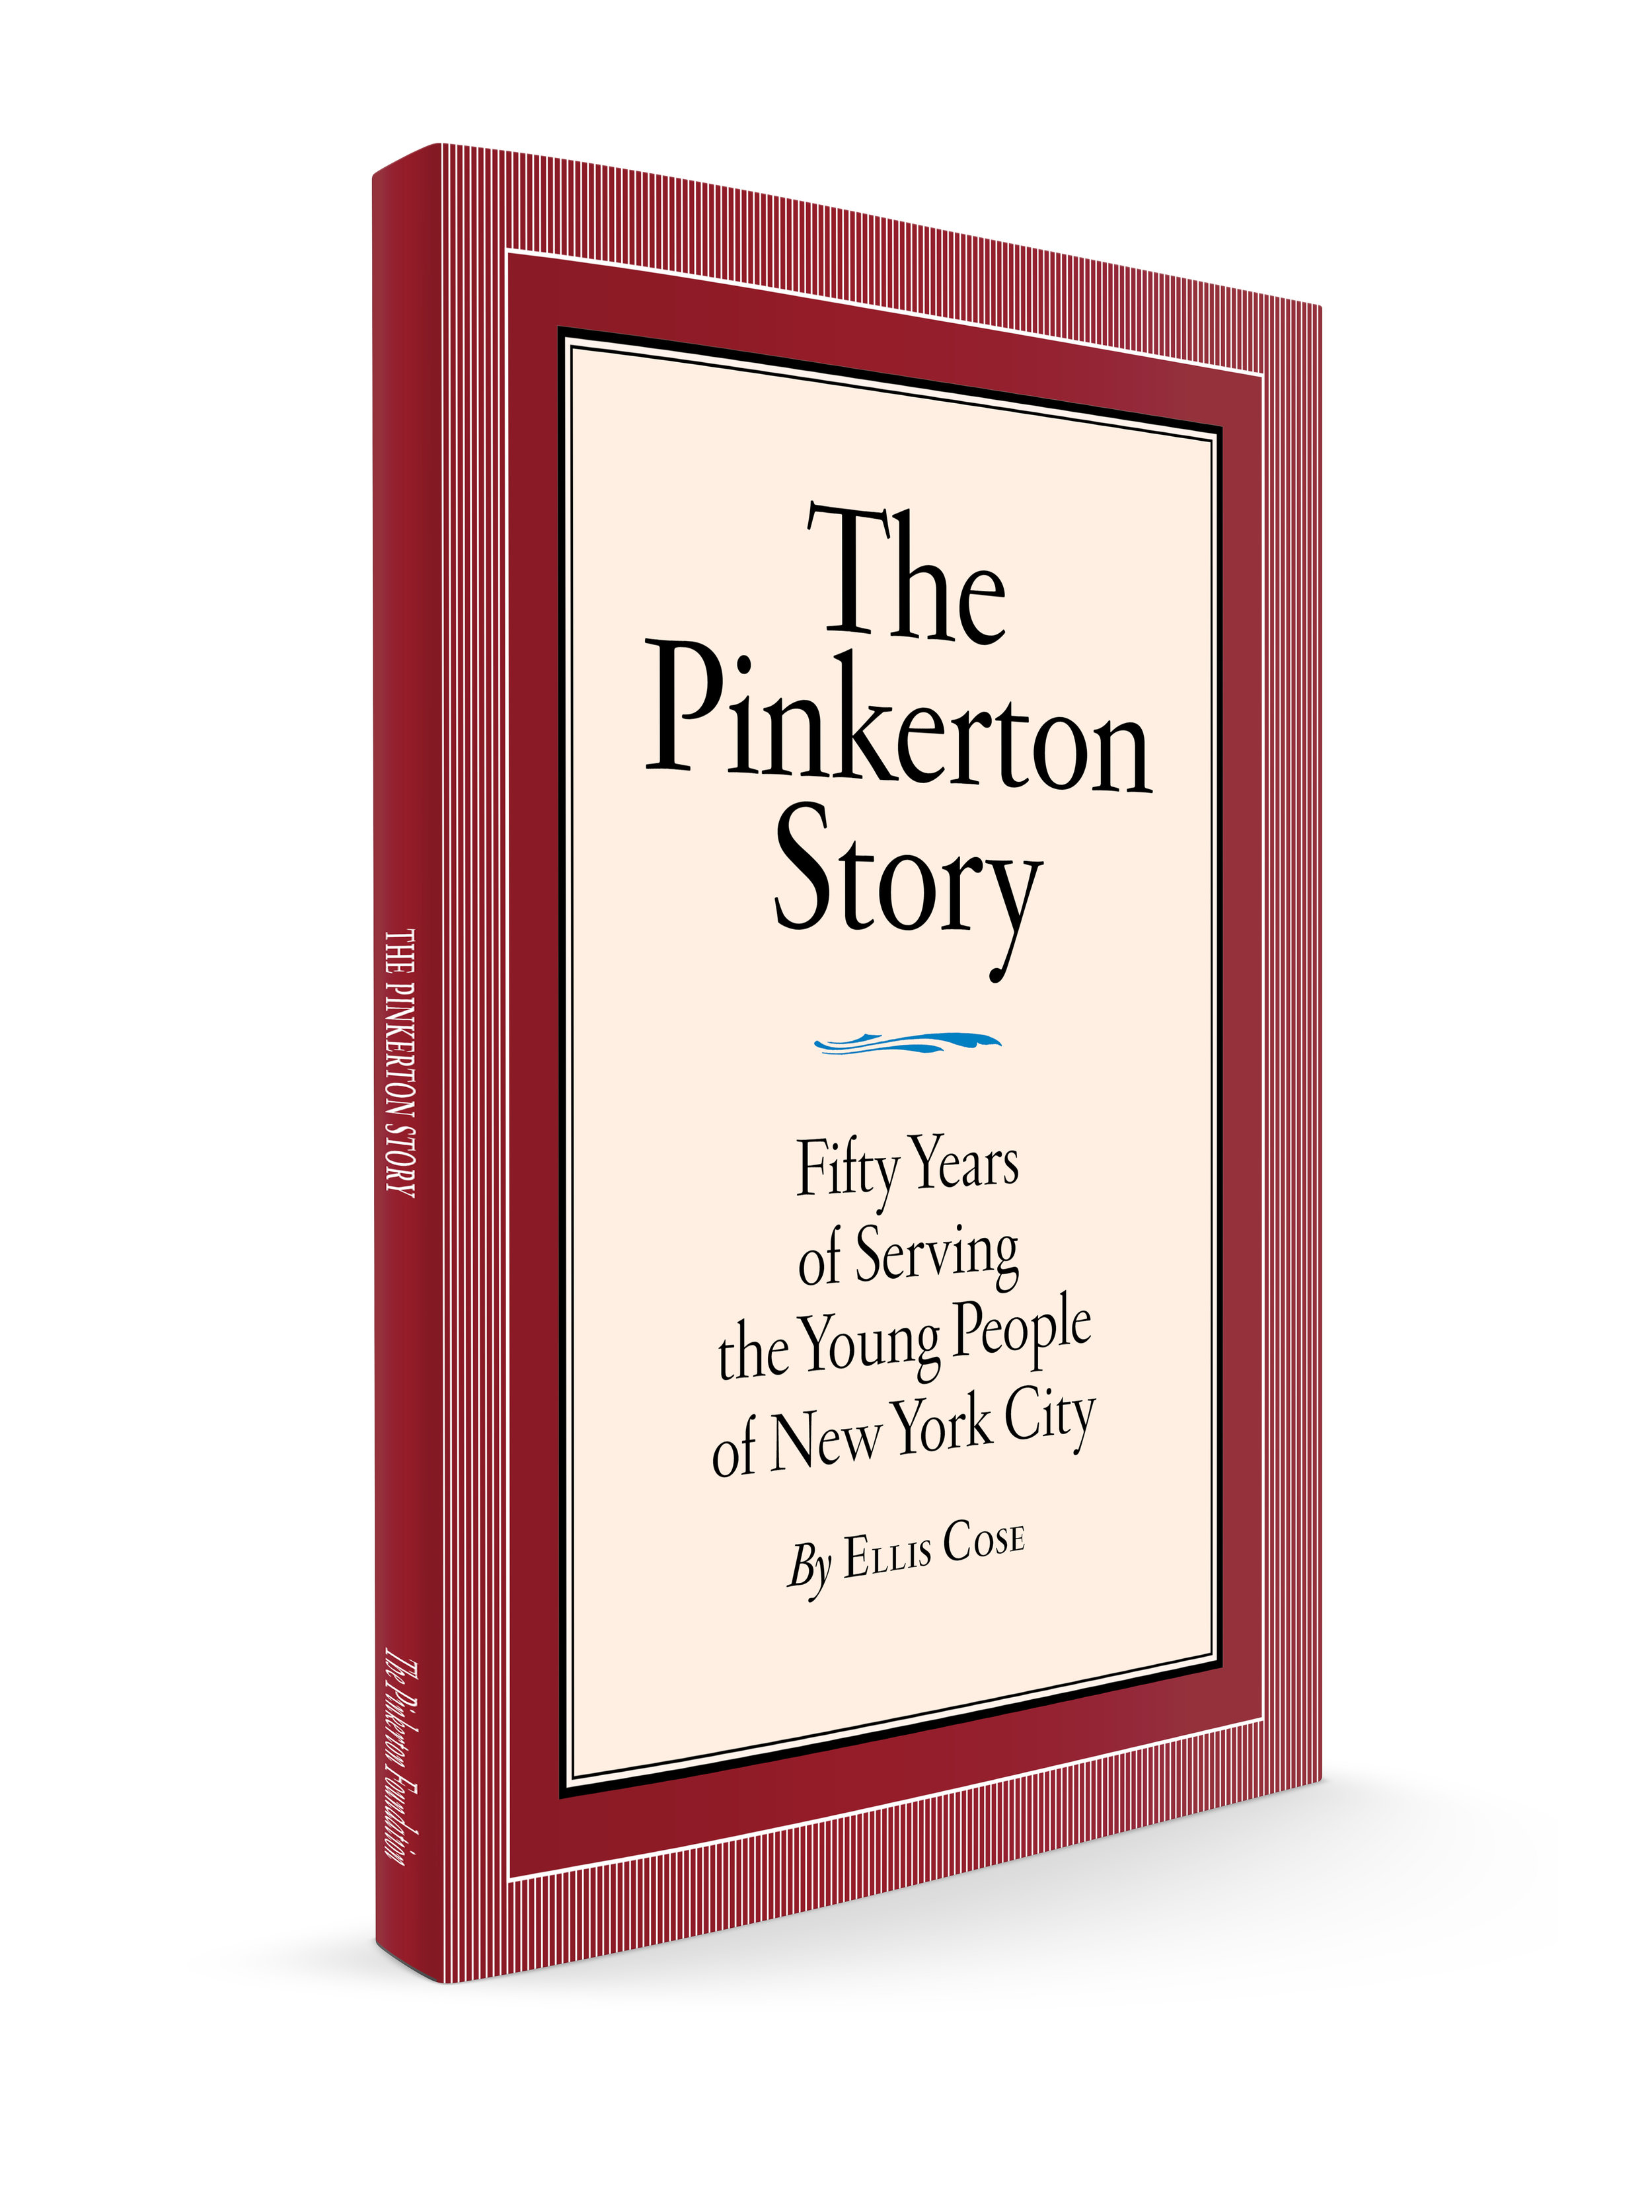 The Pinkerton Story, published by the Pinkerton Foundation.  Roger Black  called me and asked if I'd like to work with him on it. I said yes, so we designed it together. The Pinkerton Foundation awards grants to organizations who create after school programs for kids and young adults in NYC. The goal is to help reduce juvenile delinquency. A wonderful group of people. Photo editor was Karen Mullarkey. Photographs were by Michael Santiago. Designers who worked with me were  Vera Naughton and  Kerstin Michaelsen . The photo essays highlight certain very successful programs the foundation has worked with. A fun project with nice typographic details and wonderful images.